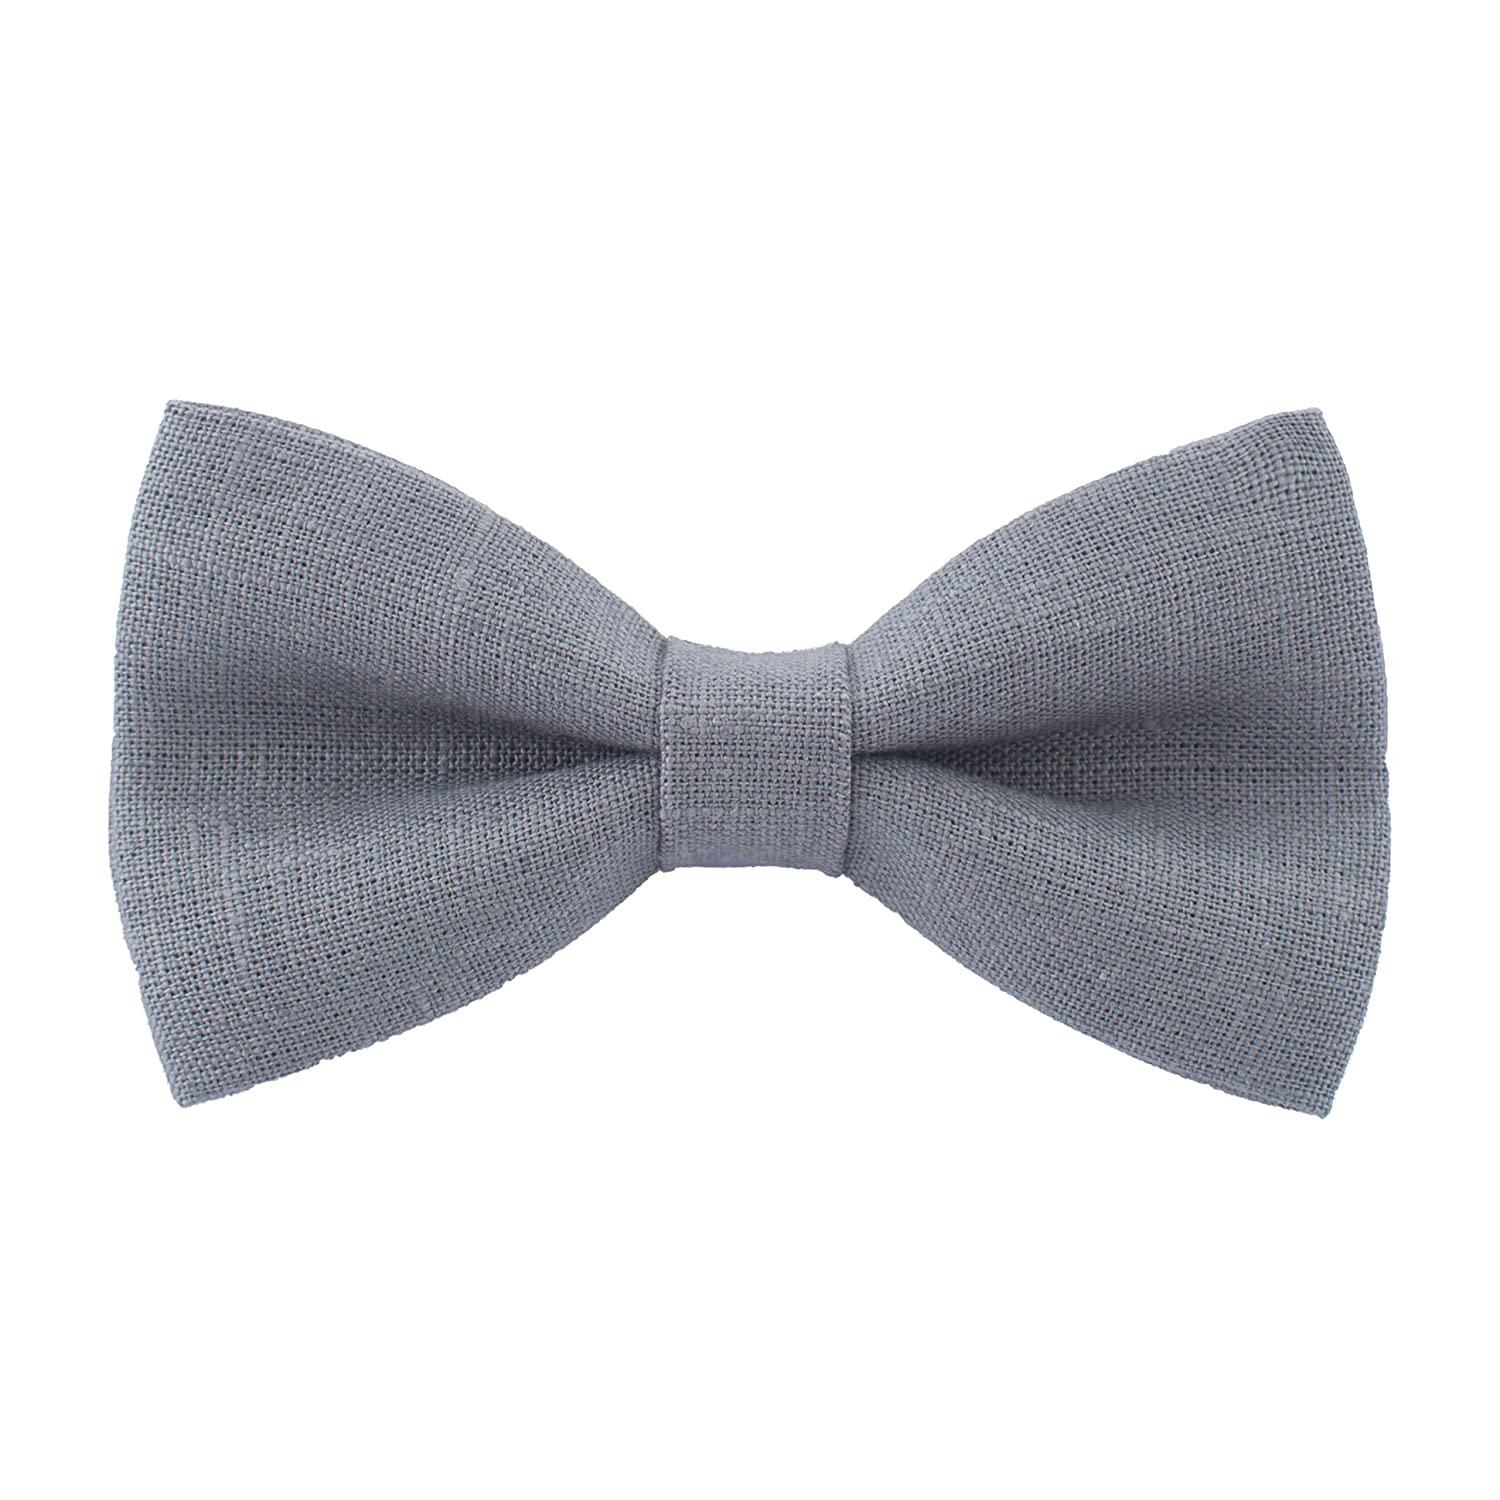 Linen Classic Pre-Tied Bow Tie Formal Solid Tuxedo, by Bow Tie House (Medium, Red) 08307